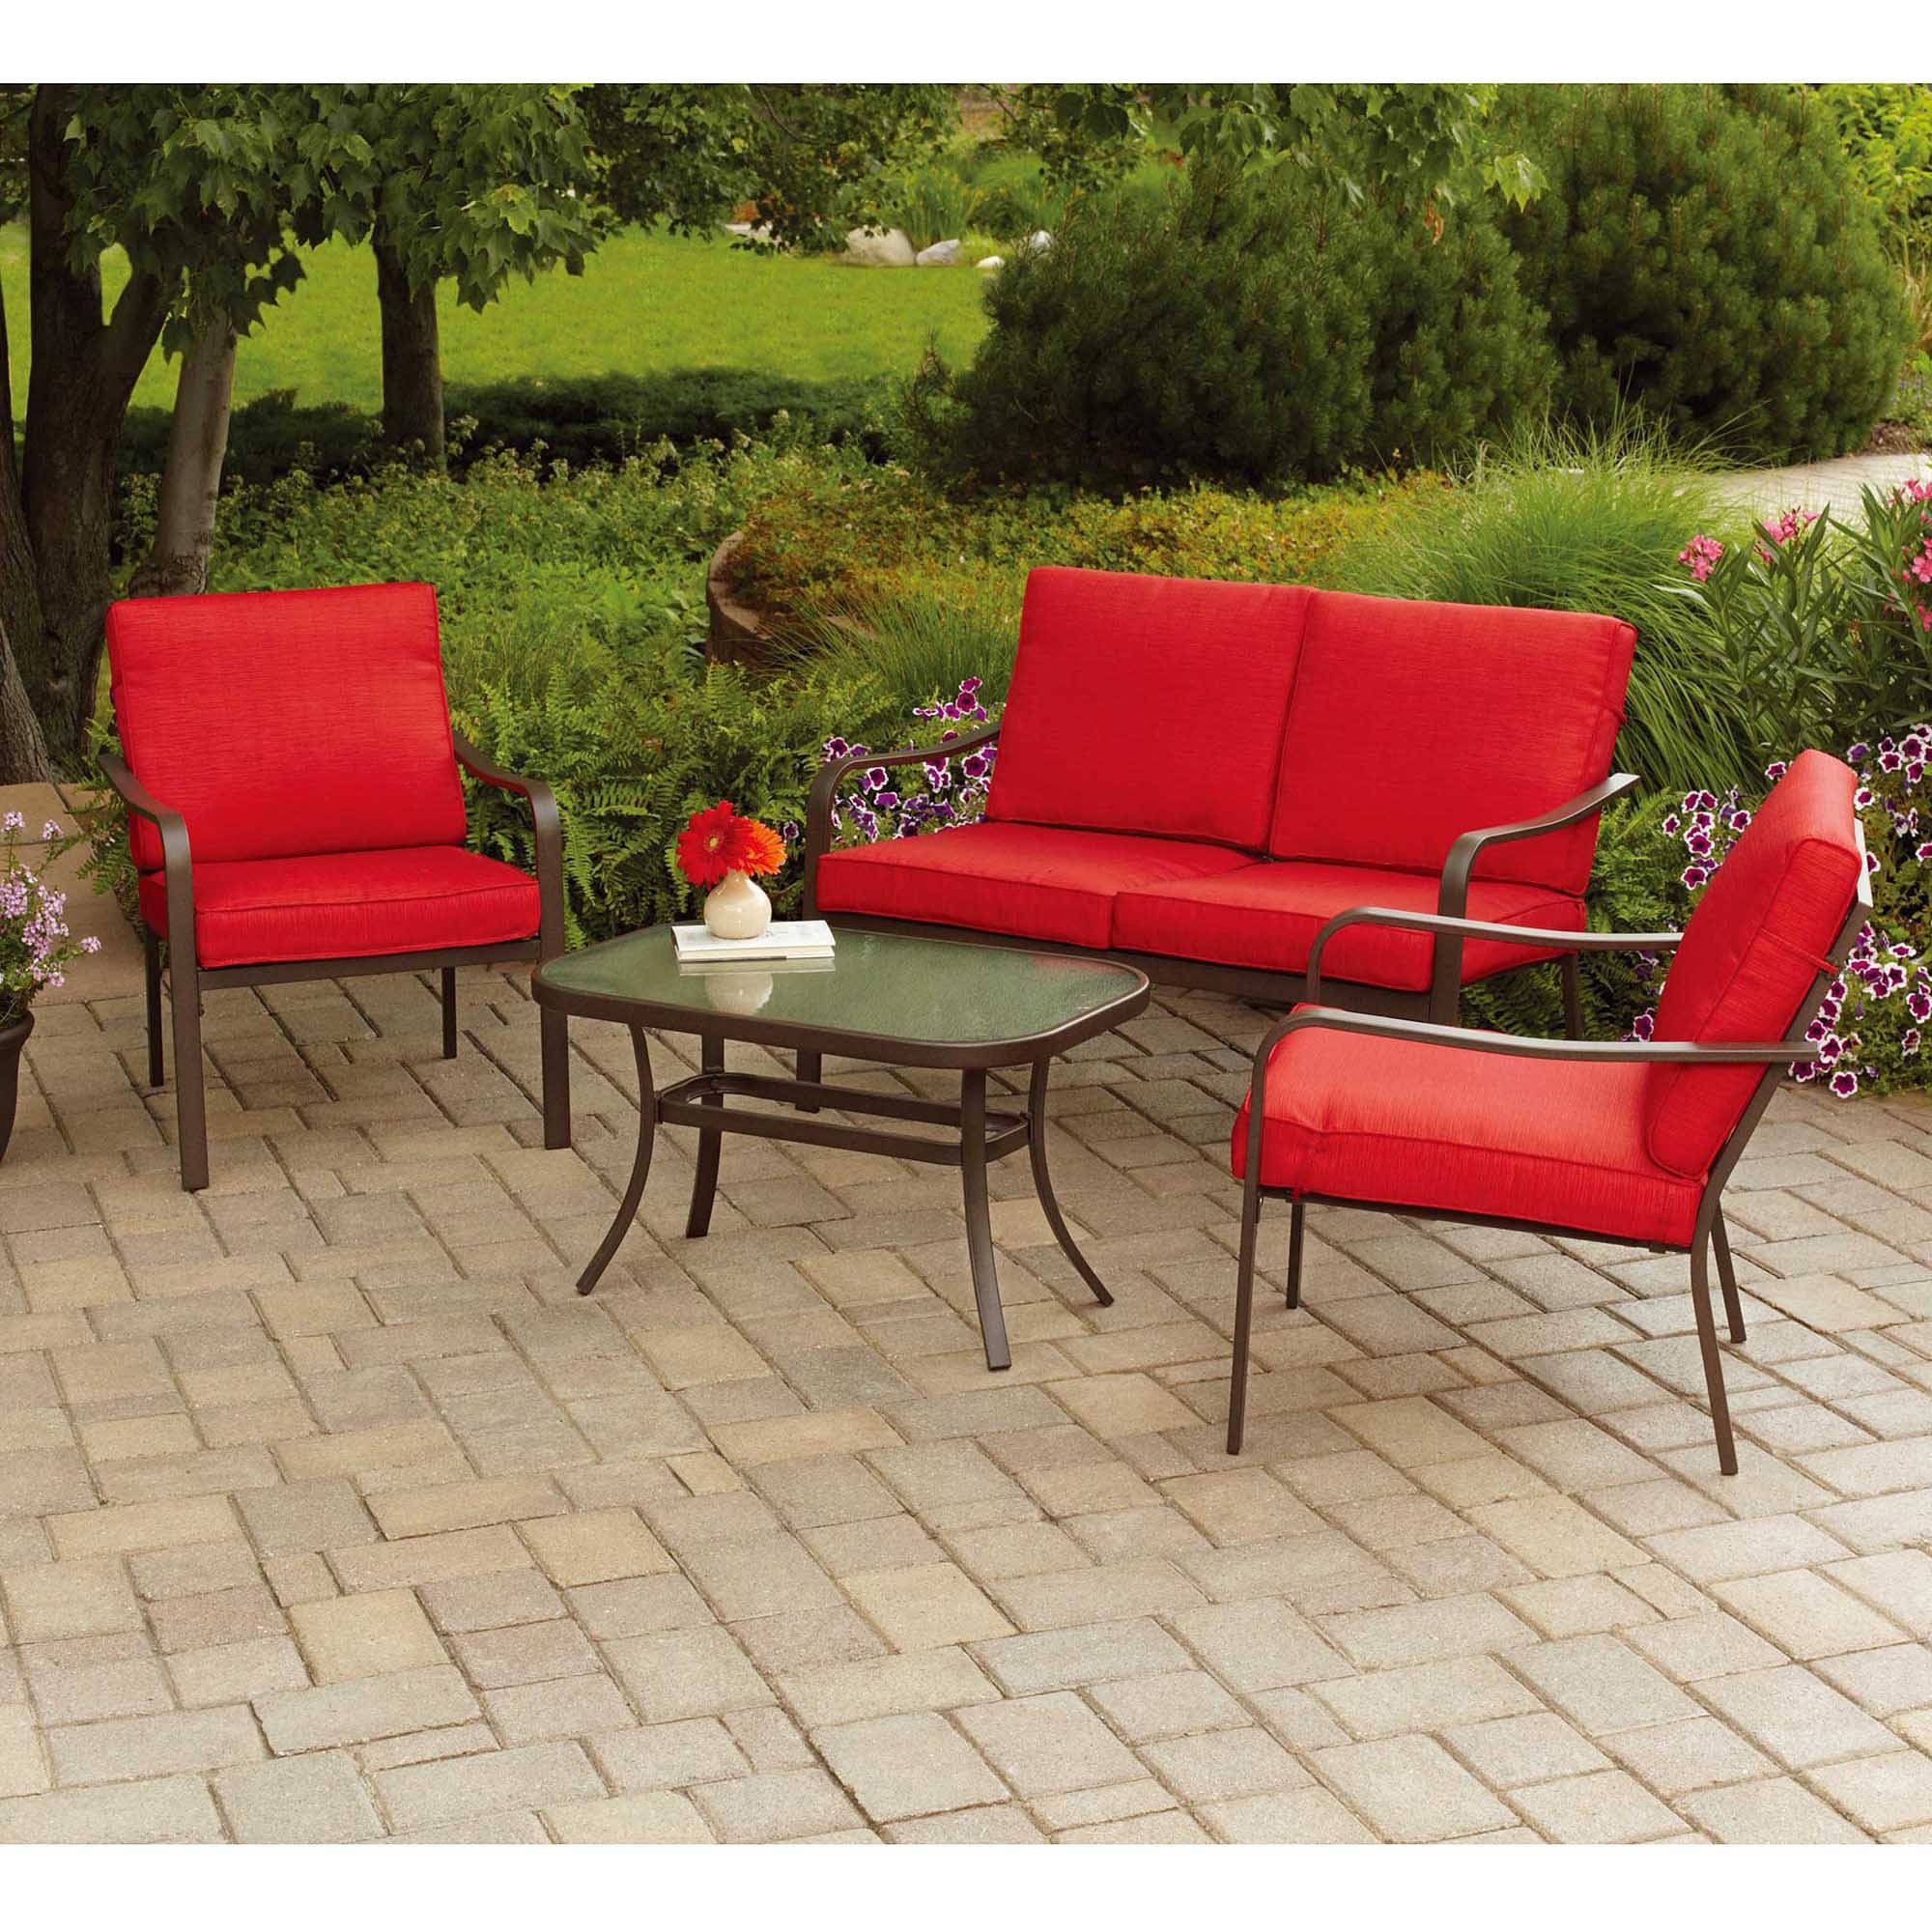 Patio Conversation Sets At Walmart Within Well Known Mainstays Stanton Cushioned 4 Piece Patio Conversation Set, Red (View 3 of 20)